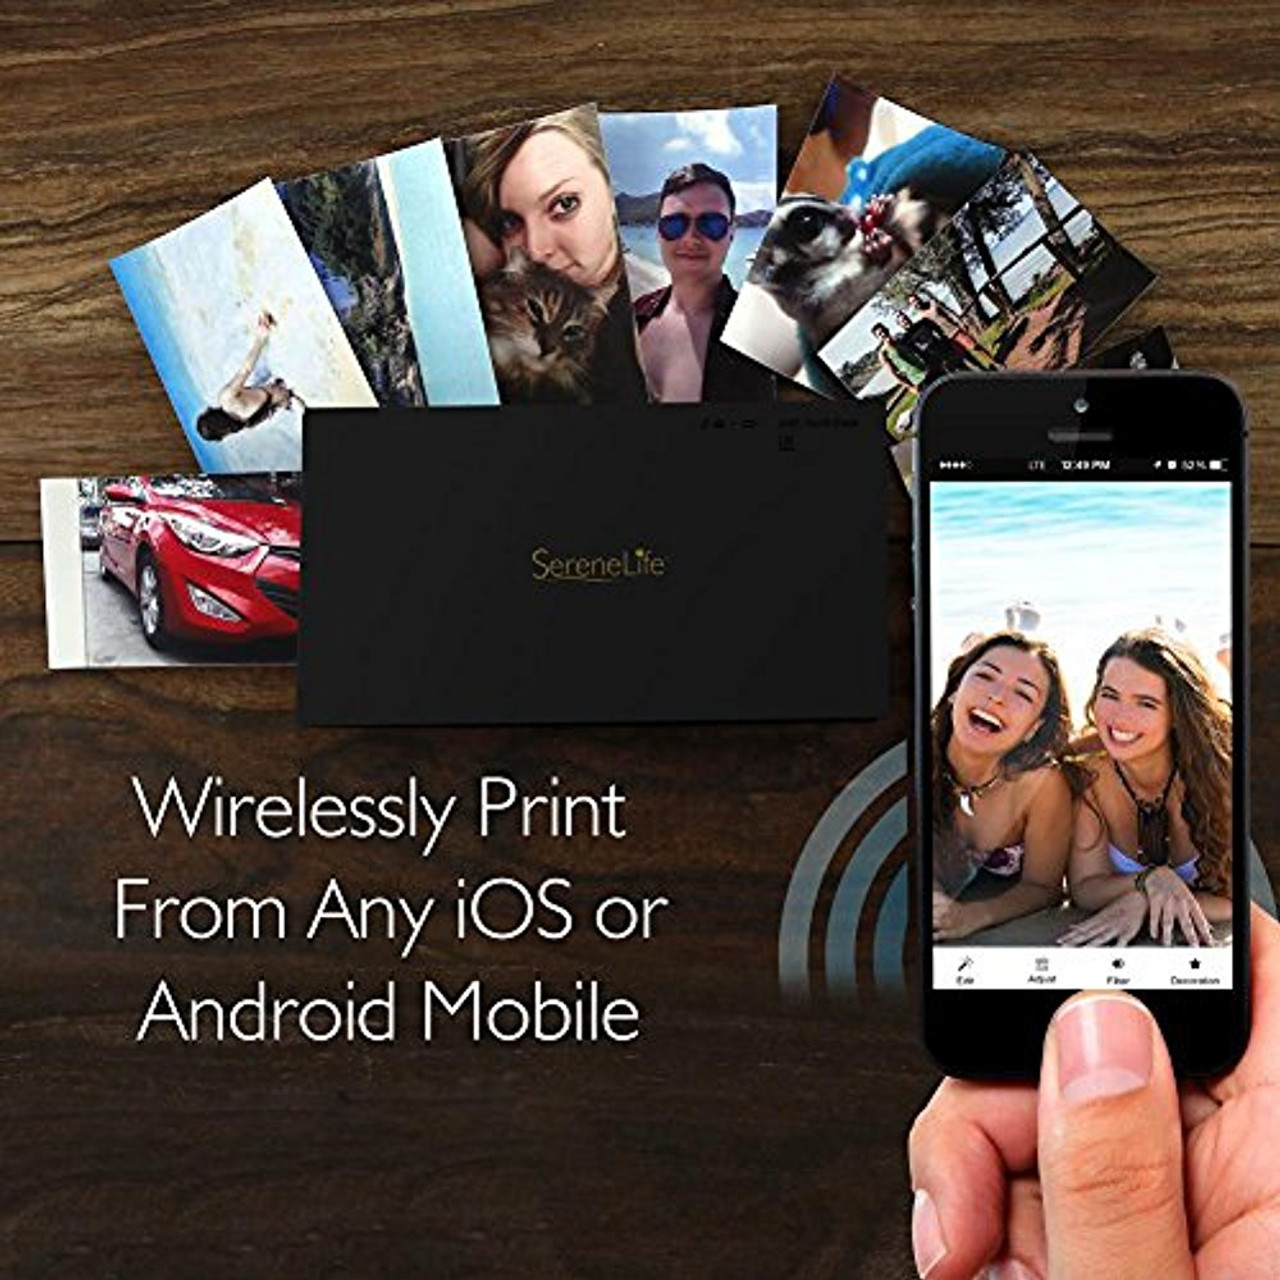 buy online 27cd8 6ed10 SereneLife Portable Instant Mobile Photo Printer - Wireless Color Picture  Printing from Apple iPhone, iPad or Android Smartphone Camera - Mini  Compact ...